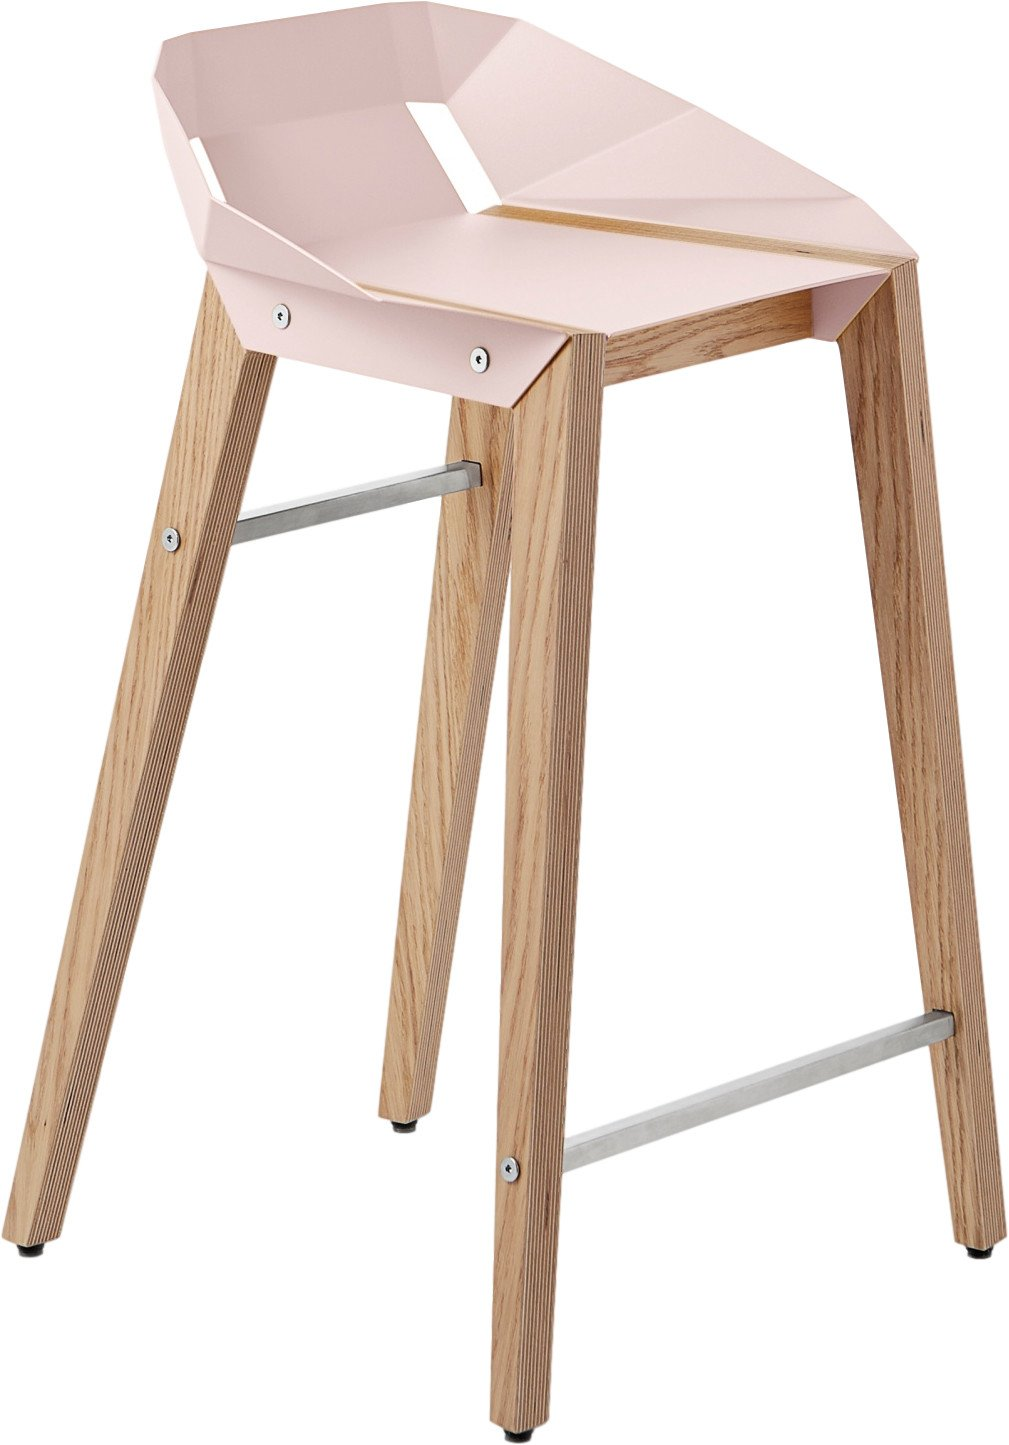 Diago Stool Low Pink, Tabanda, Poland